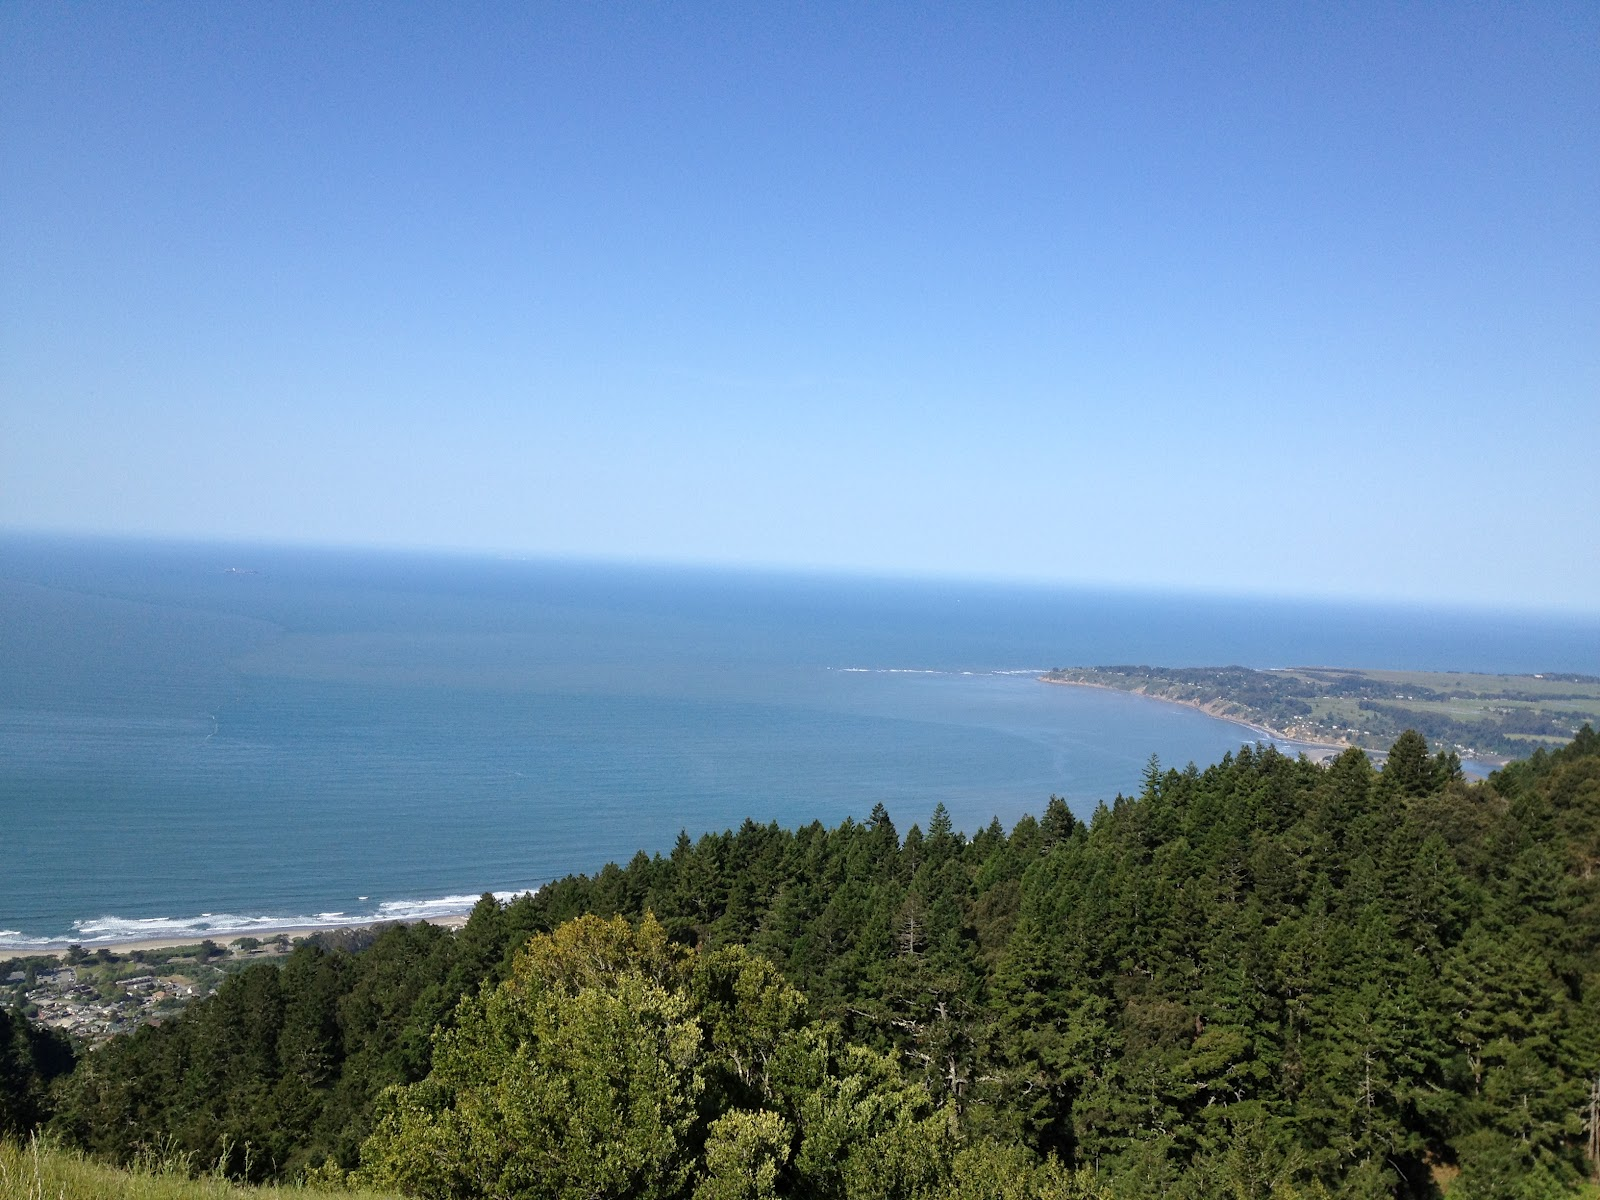 View down towards Stinson Beach.